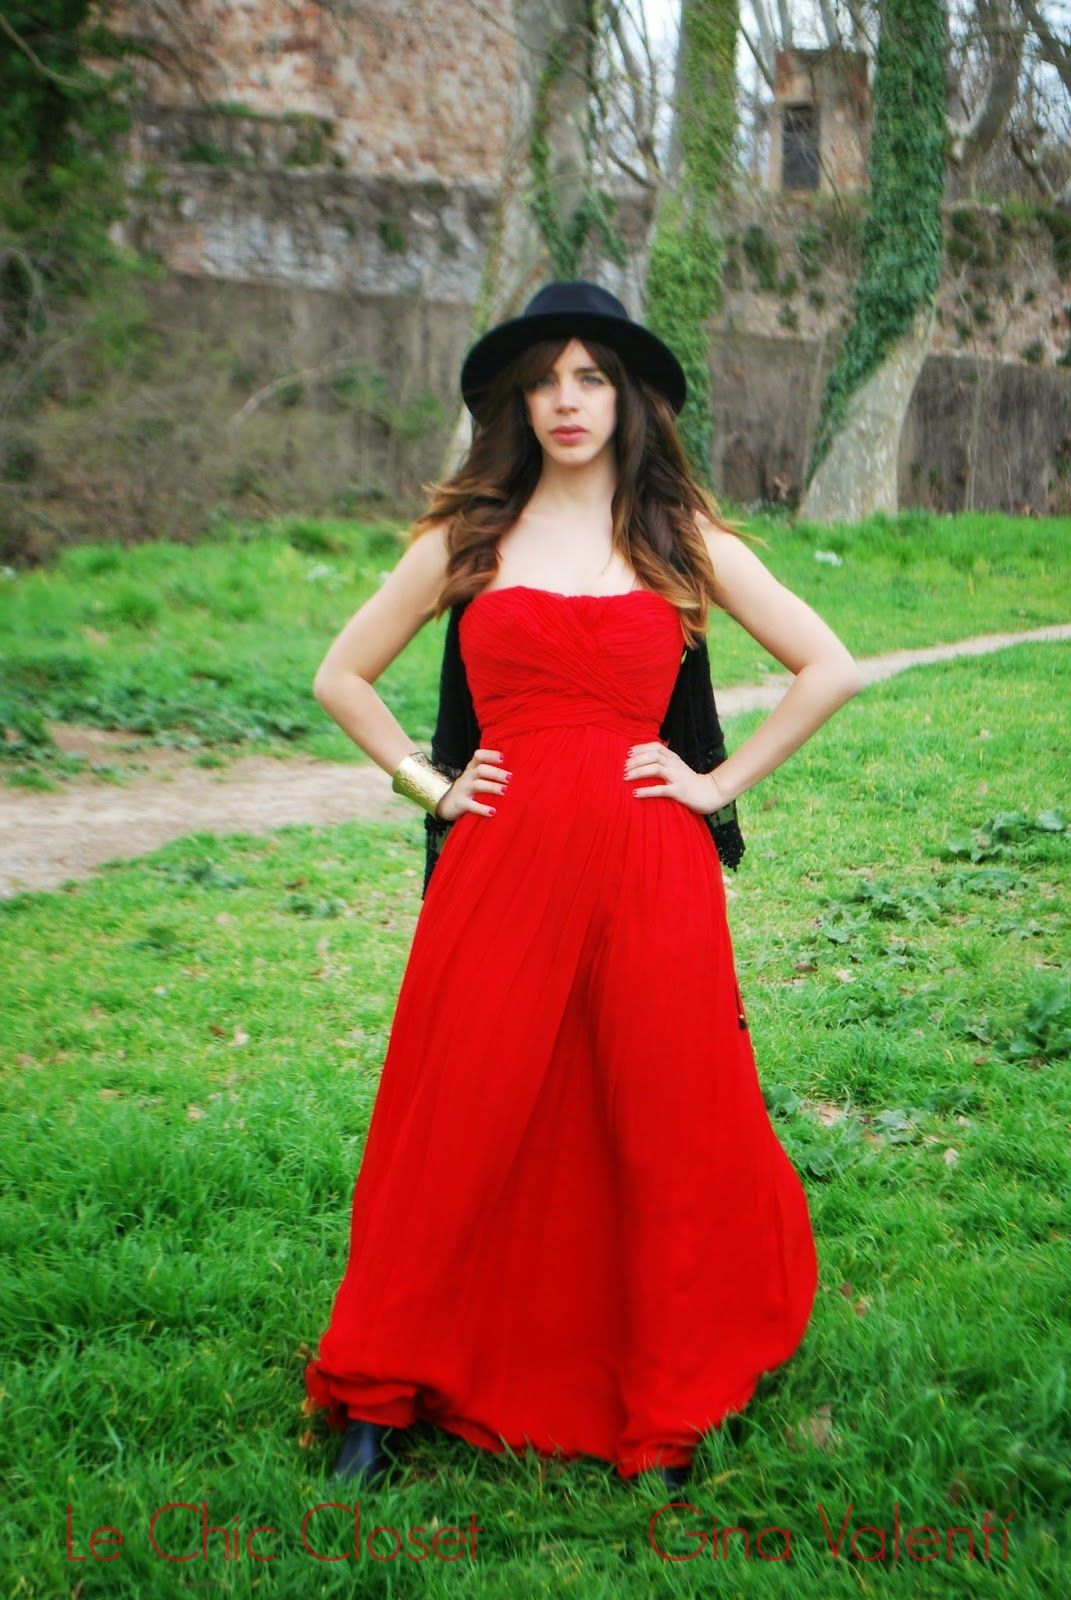 Le Chic Closet: Red http://www.lechiccloset.com/2014/04/red.html